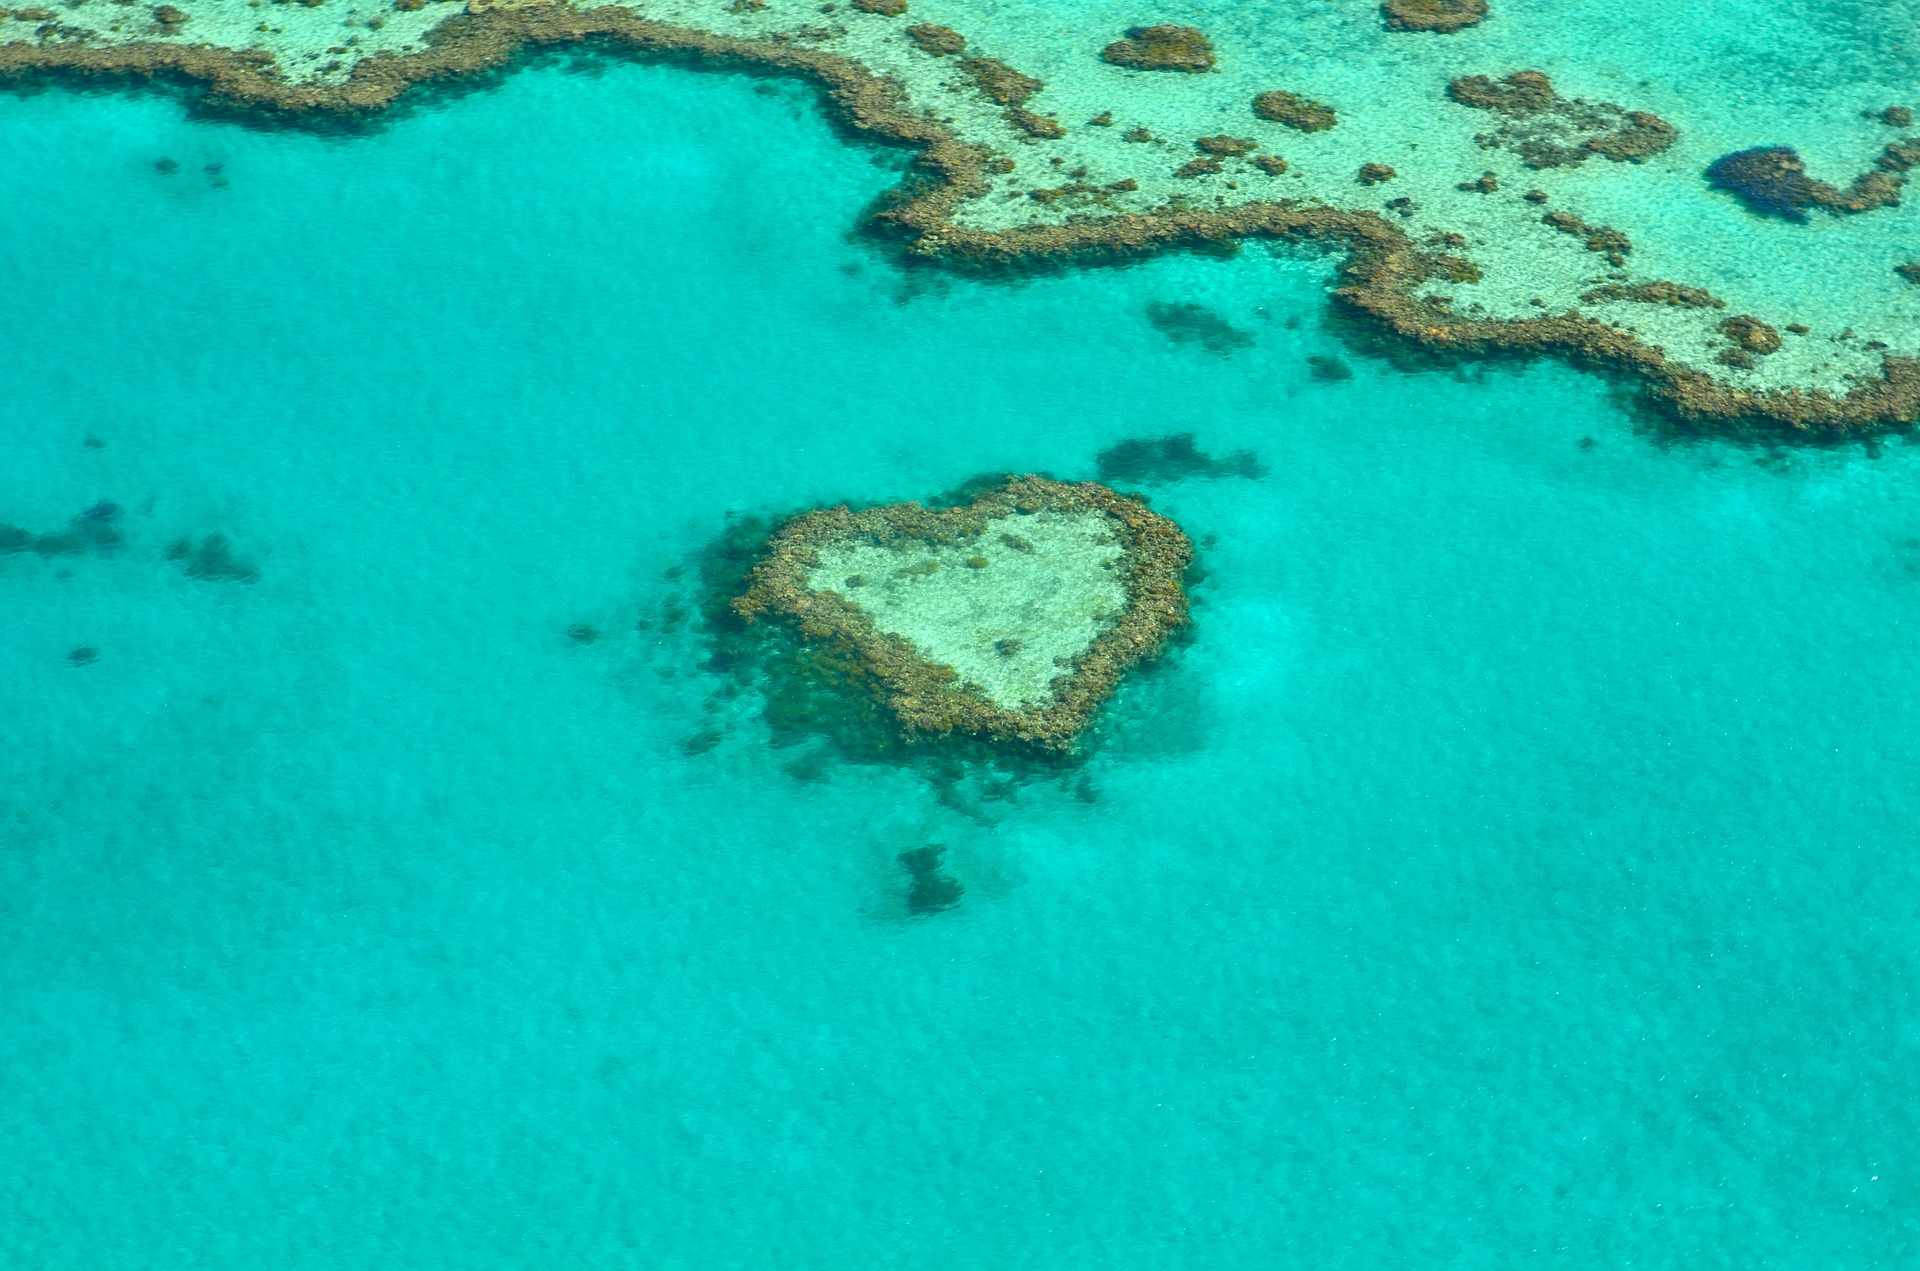 Heart reef in Great Barrier Reef